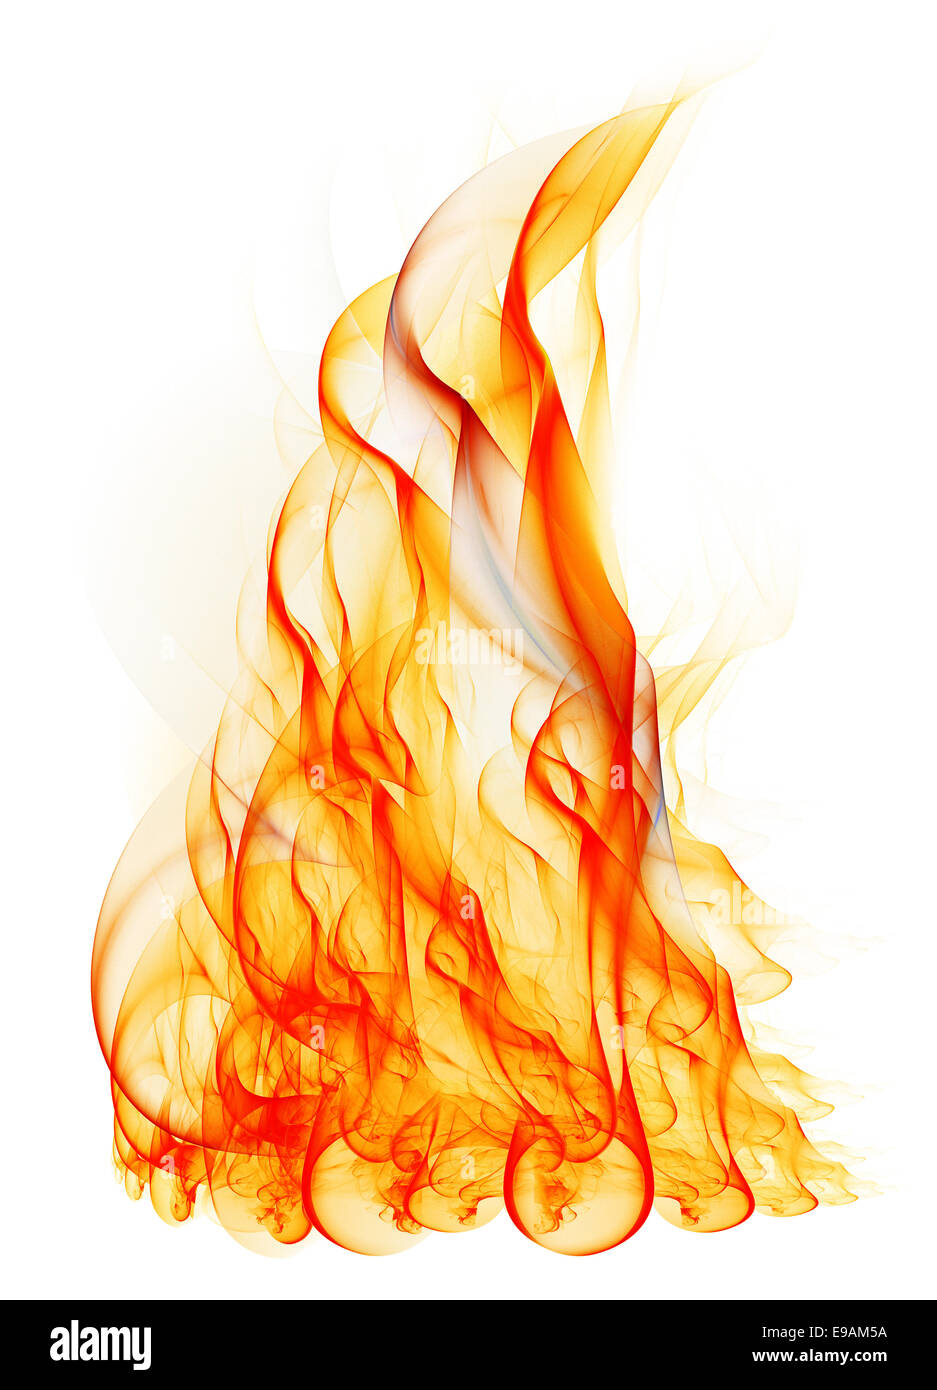 flame fractal fire isolated on white background stock